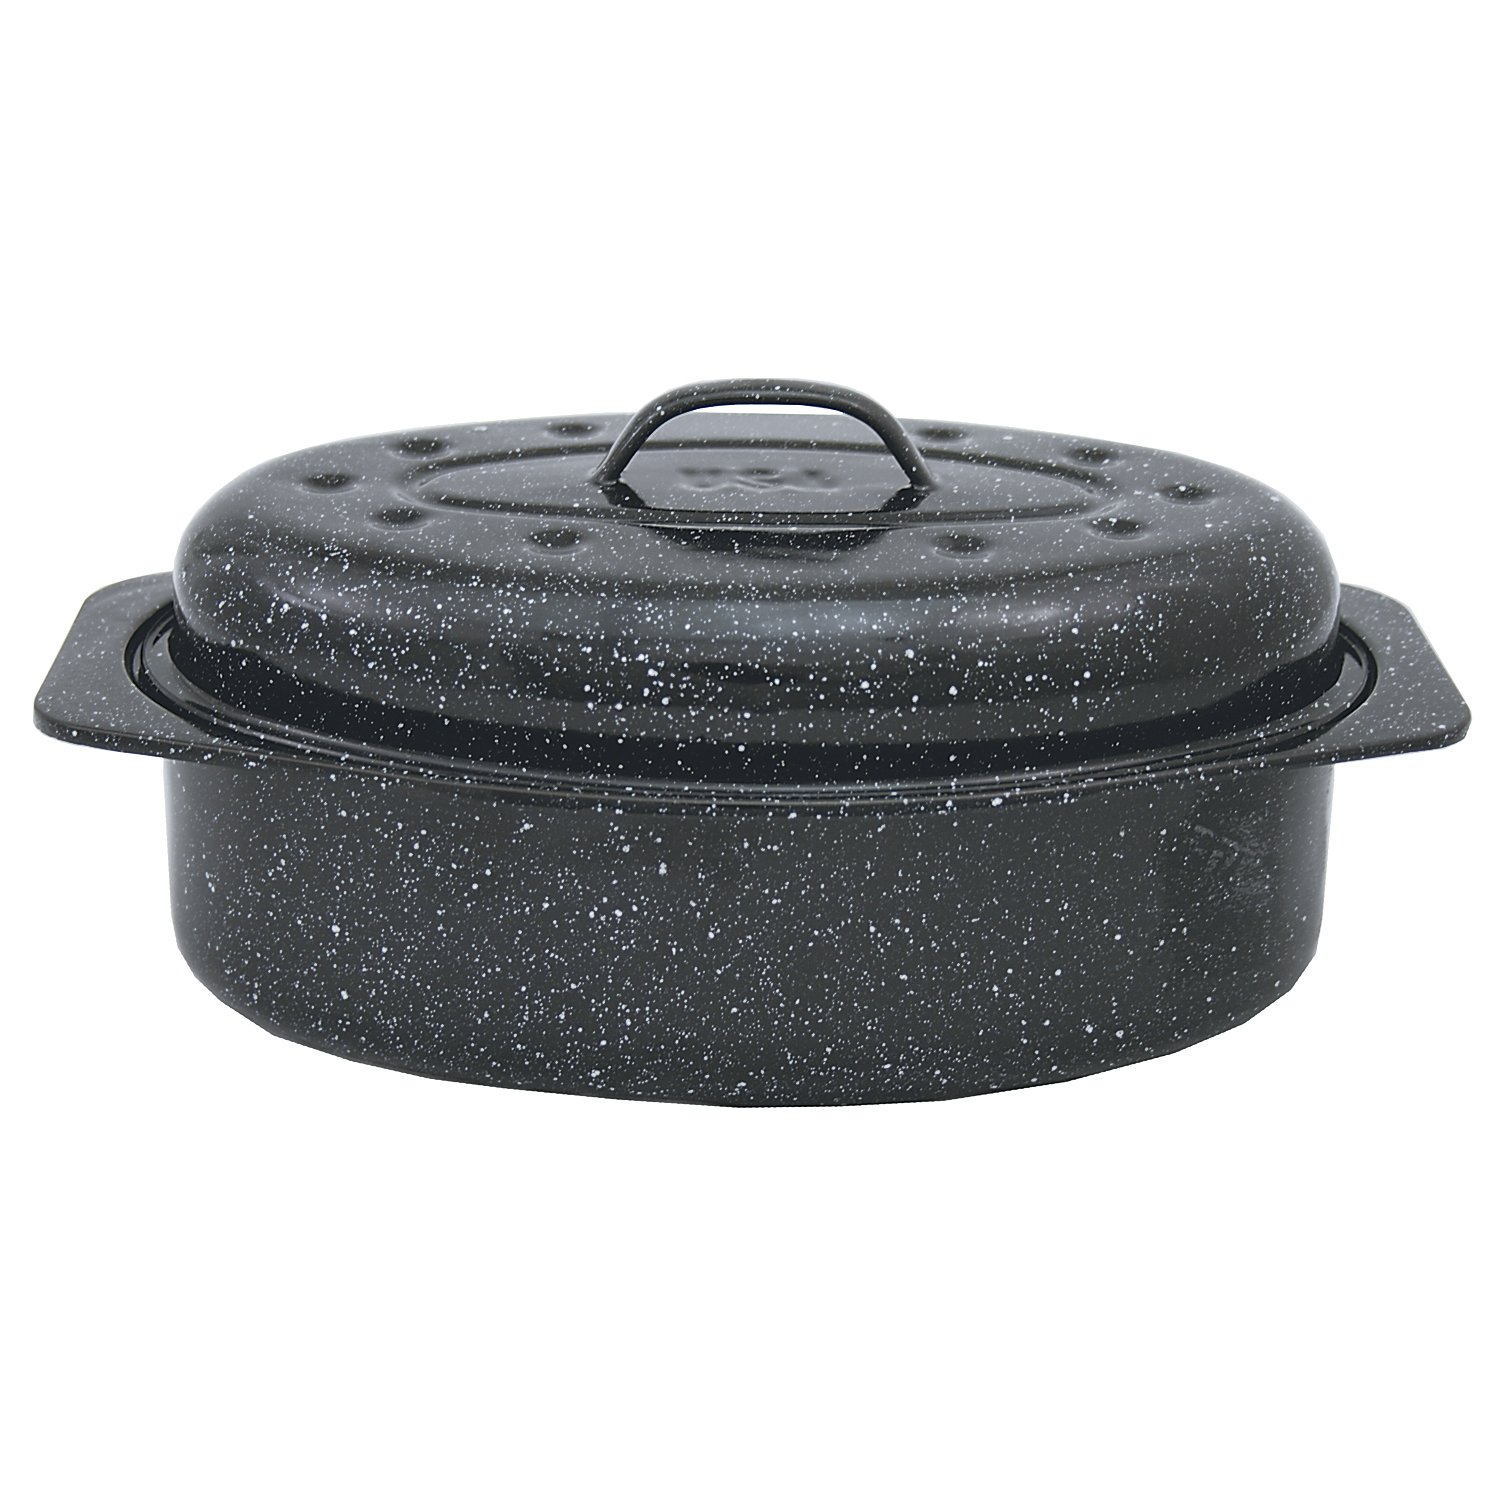 Granite Ware oval roaster